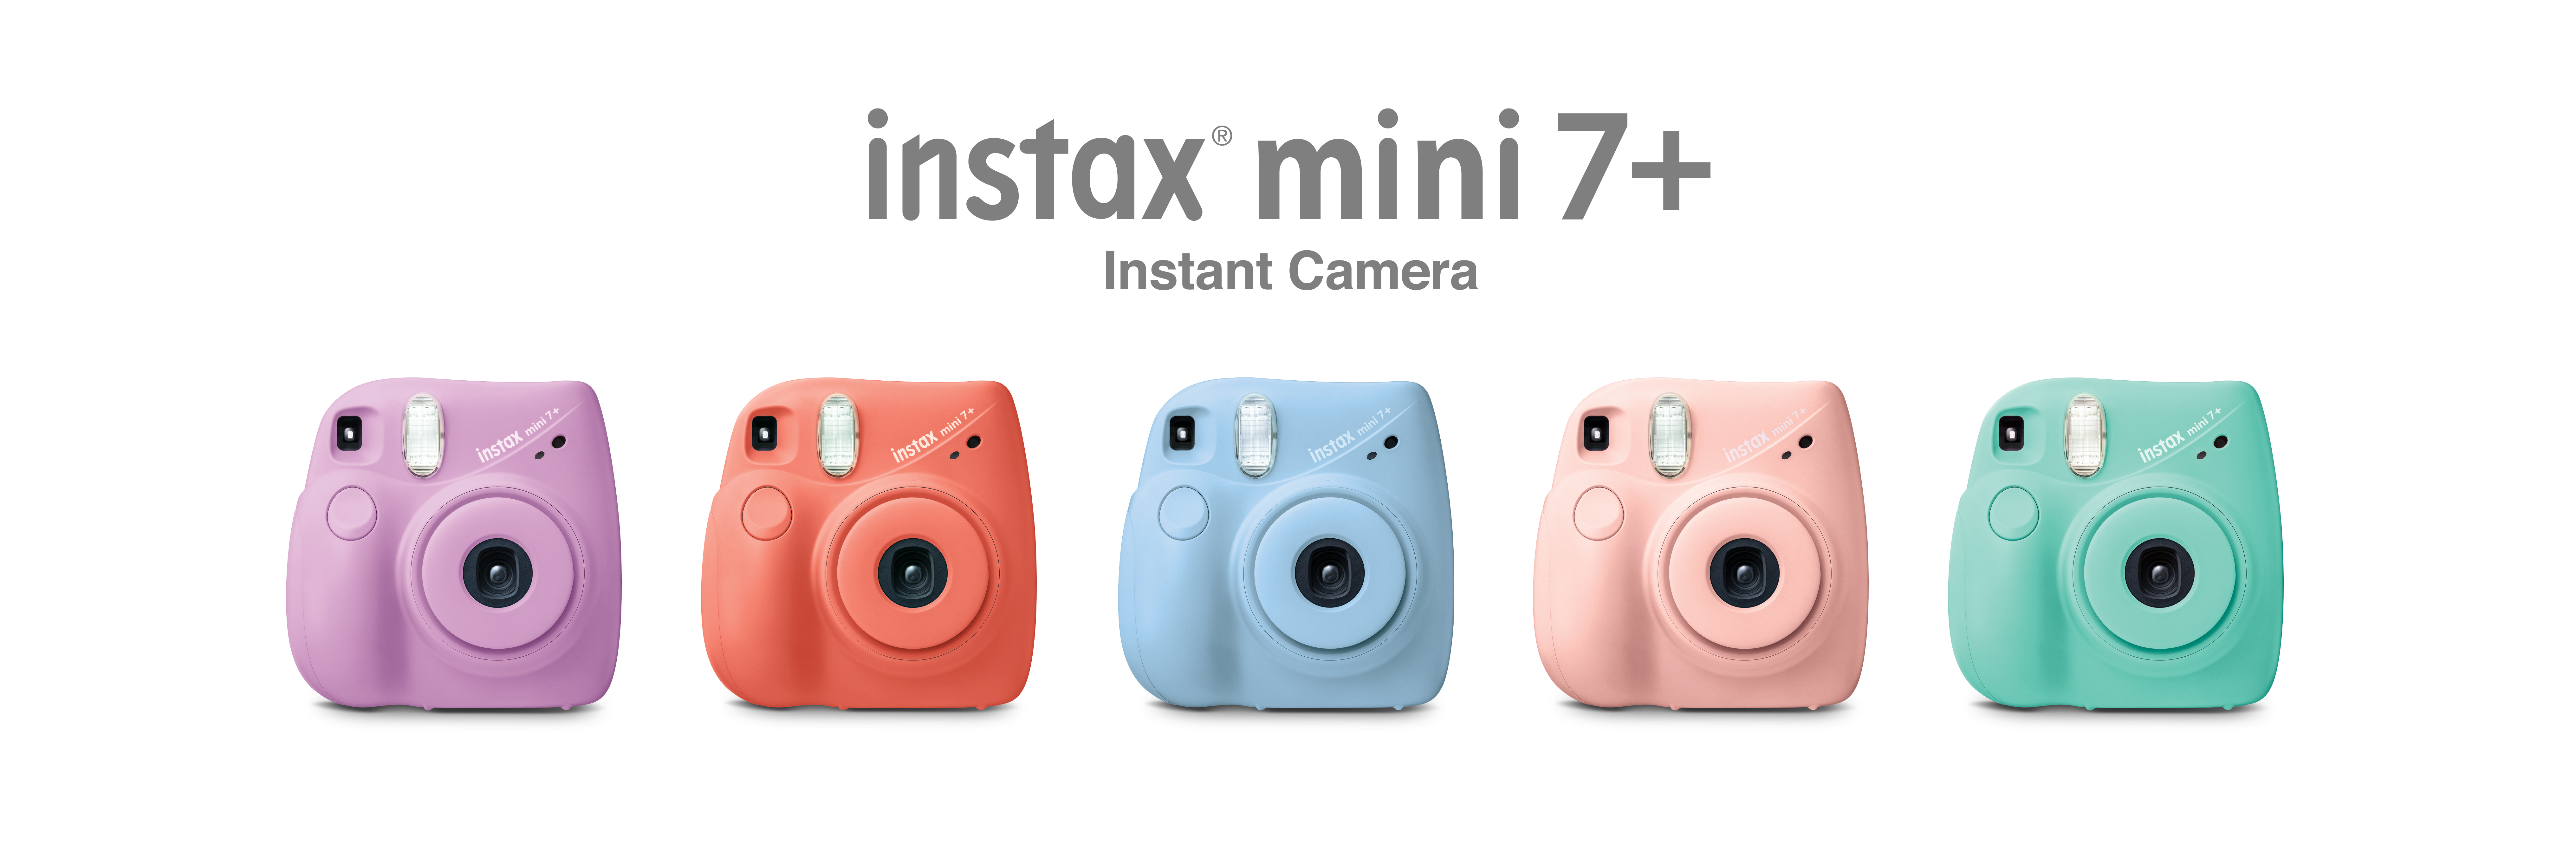 Hero image with mini 7plus cameras in different colors